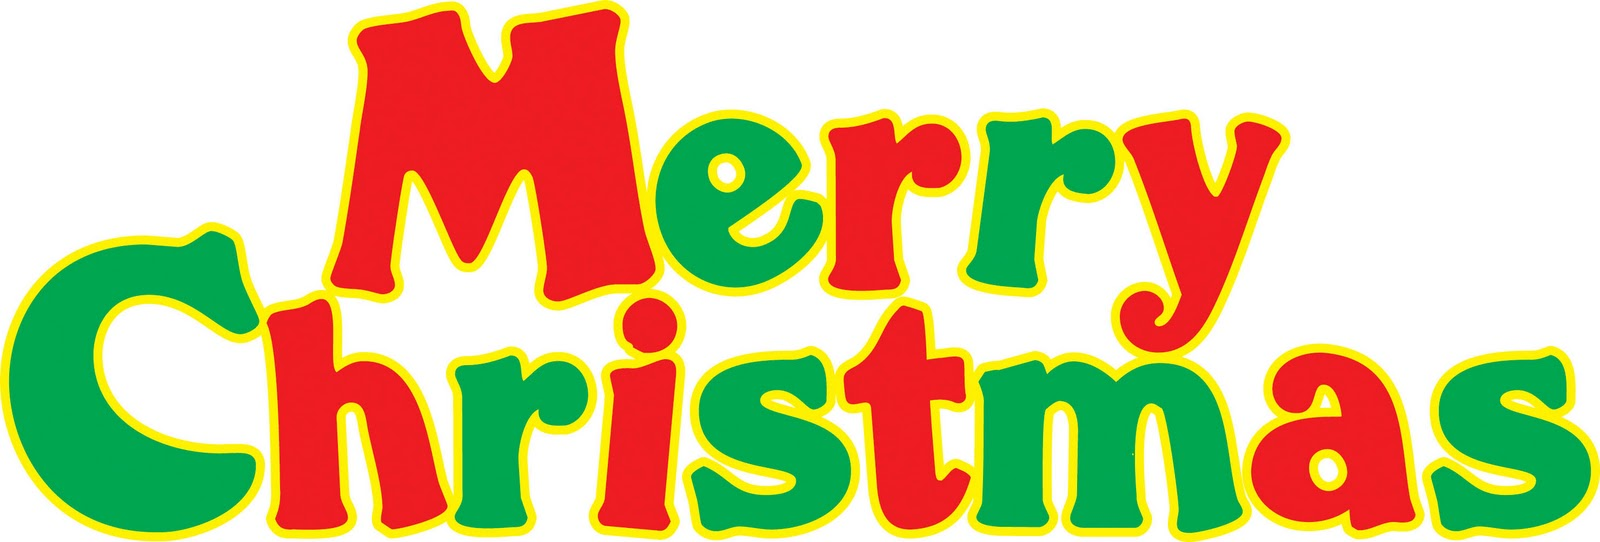 Free Christmas Clip Art.Free Printable Religious Christmas Clipart At Getdrawings